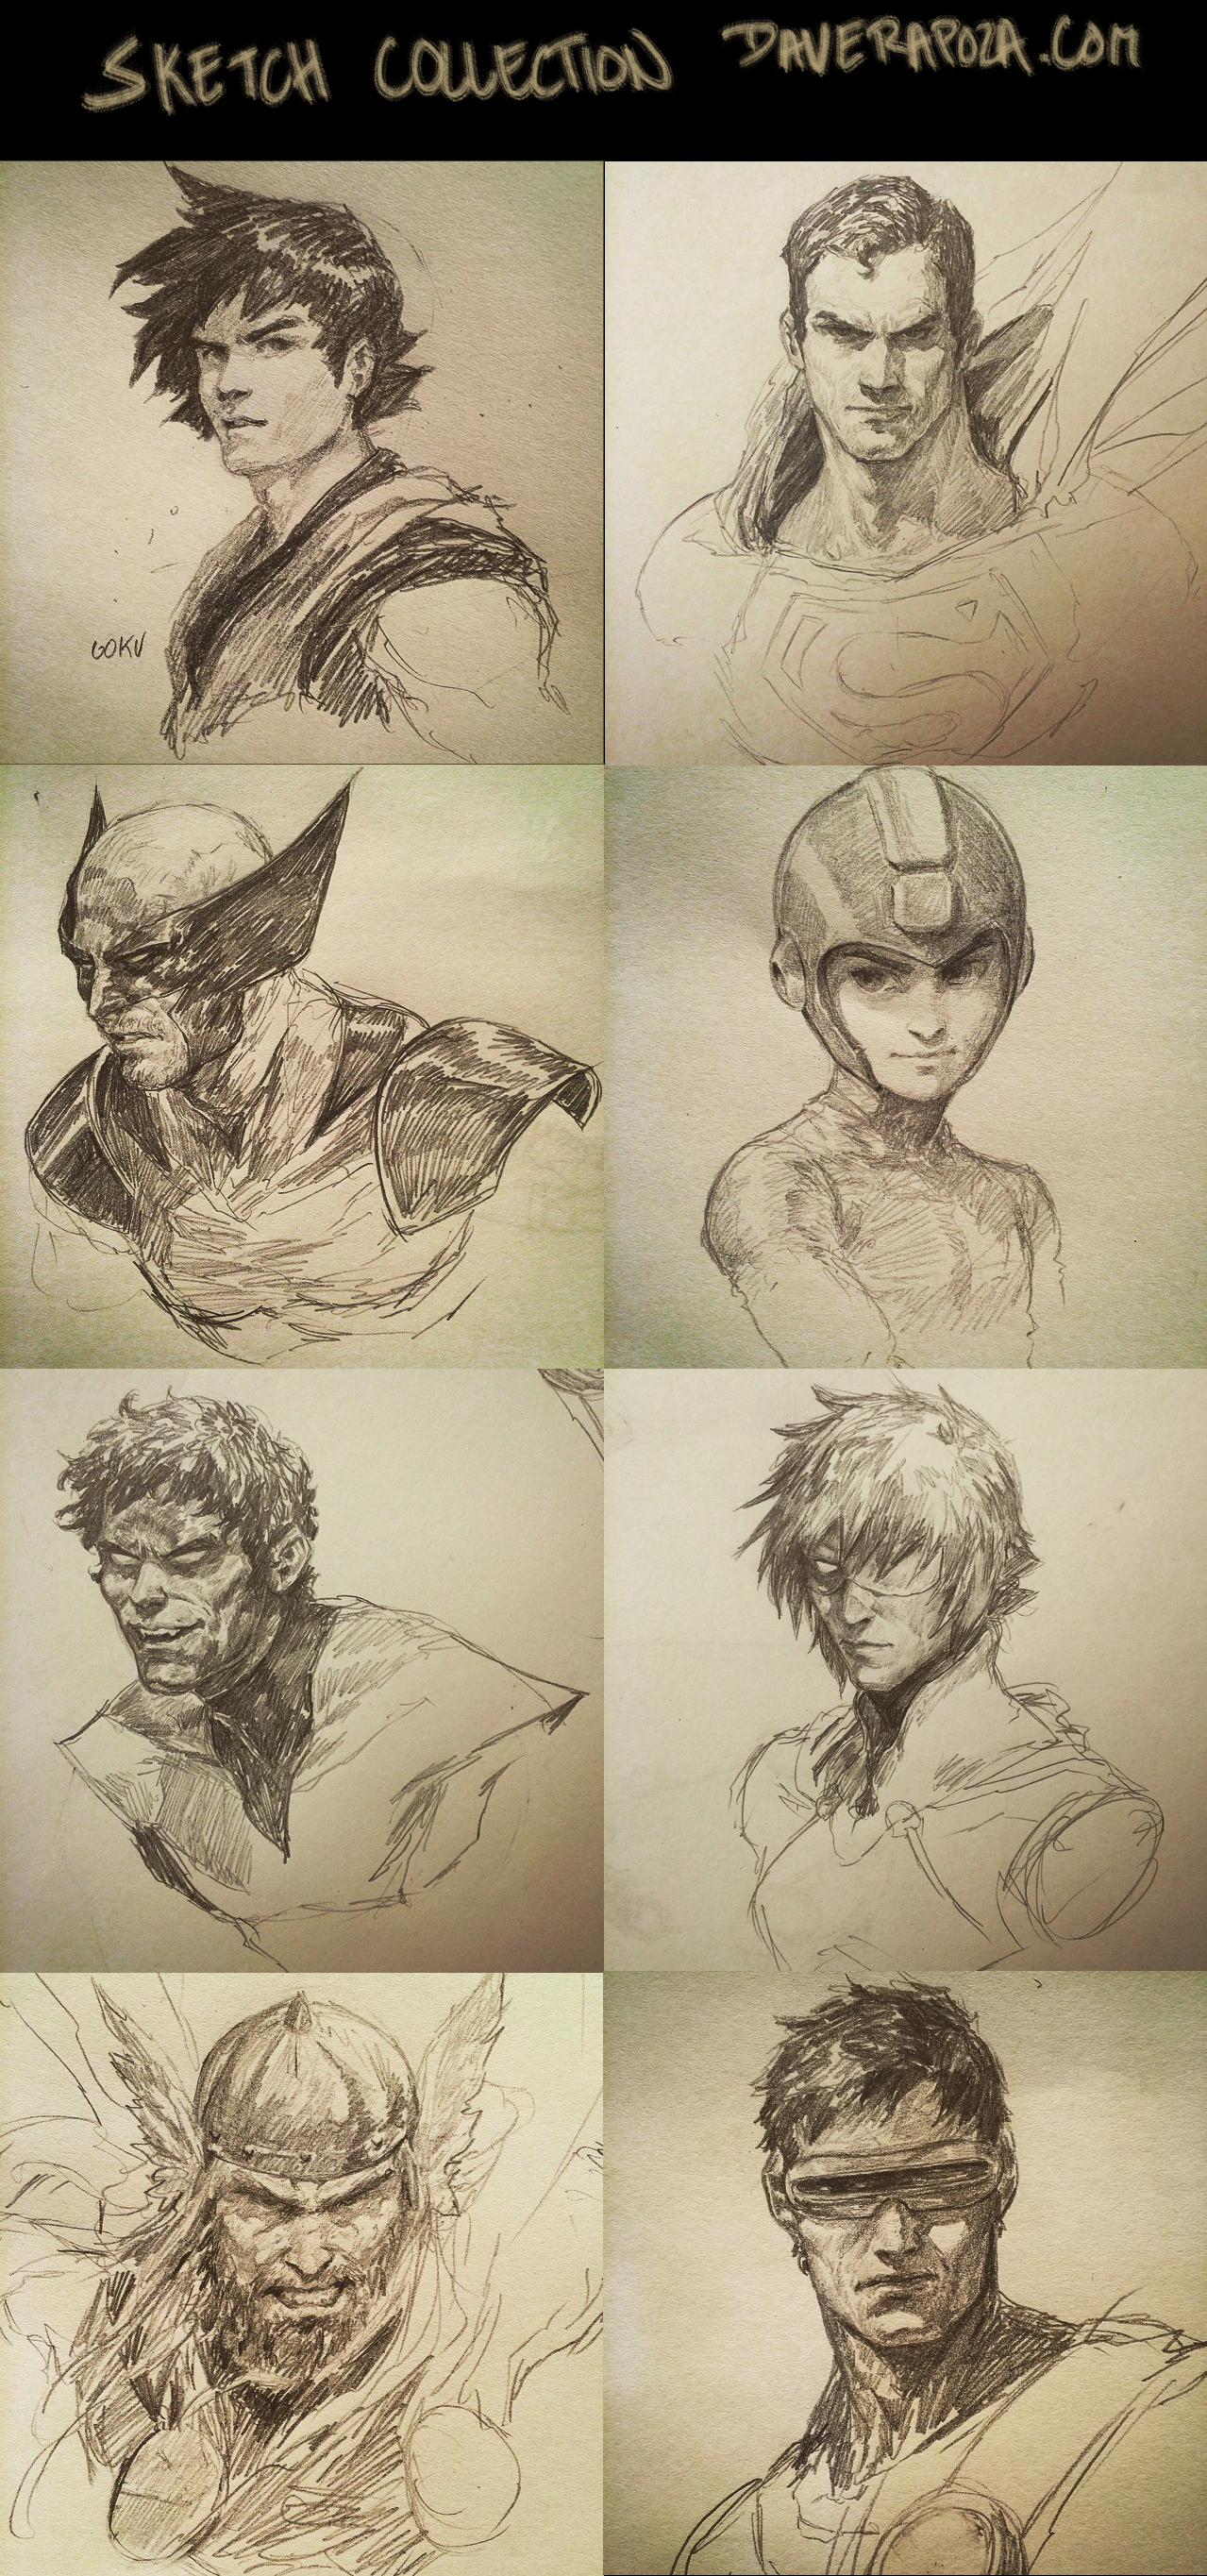 Sketch Collection!